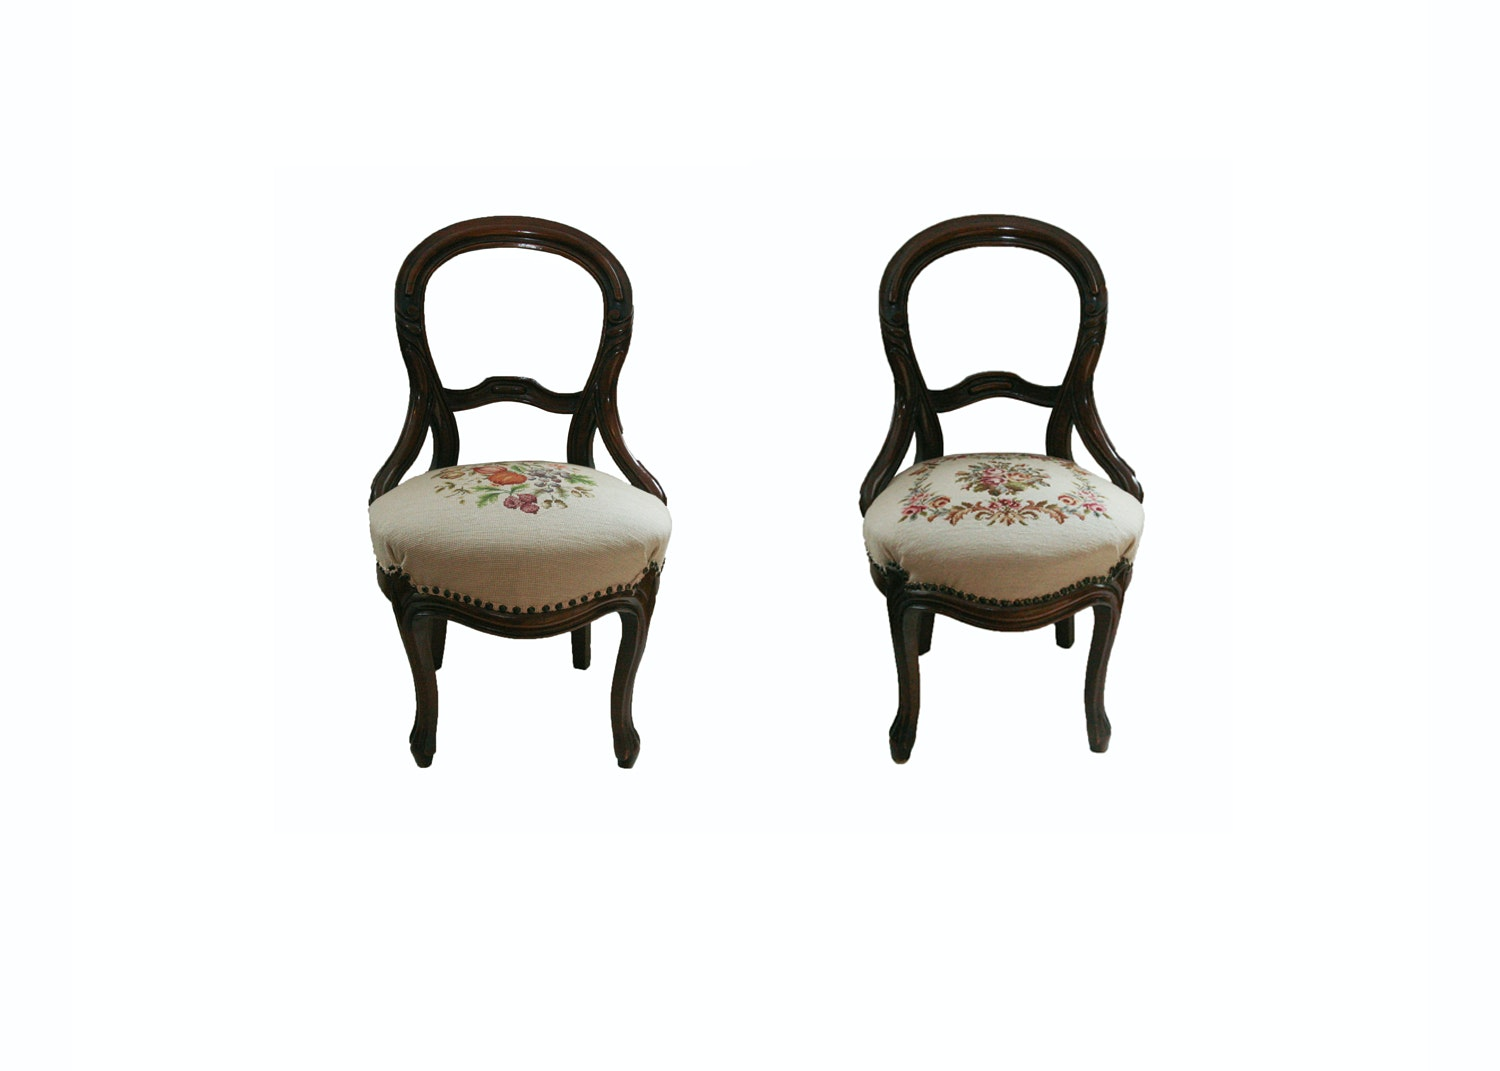 Vintage Victorian Renaissance Revival Style Side Chairs